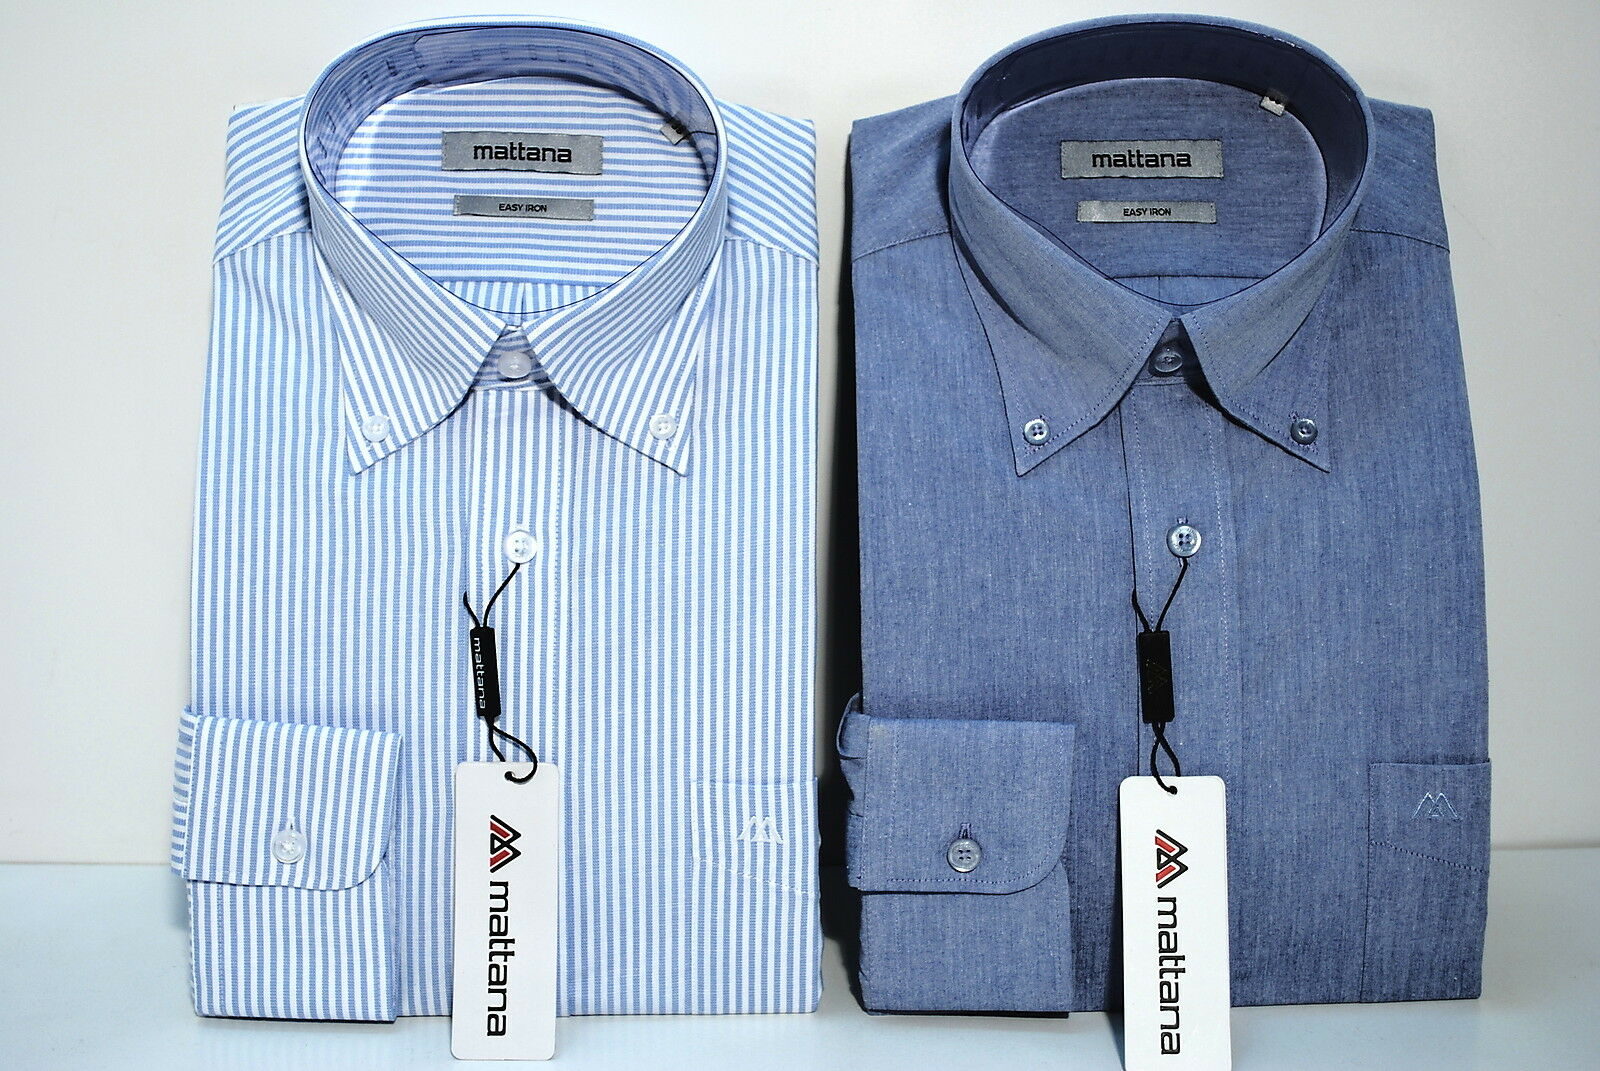 DUE CAMICIE COTONE PURO TG 38 STIRA FACILE COLLO BUTTON DOWN UOMO MANICA LUNGA